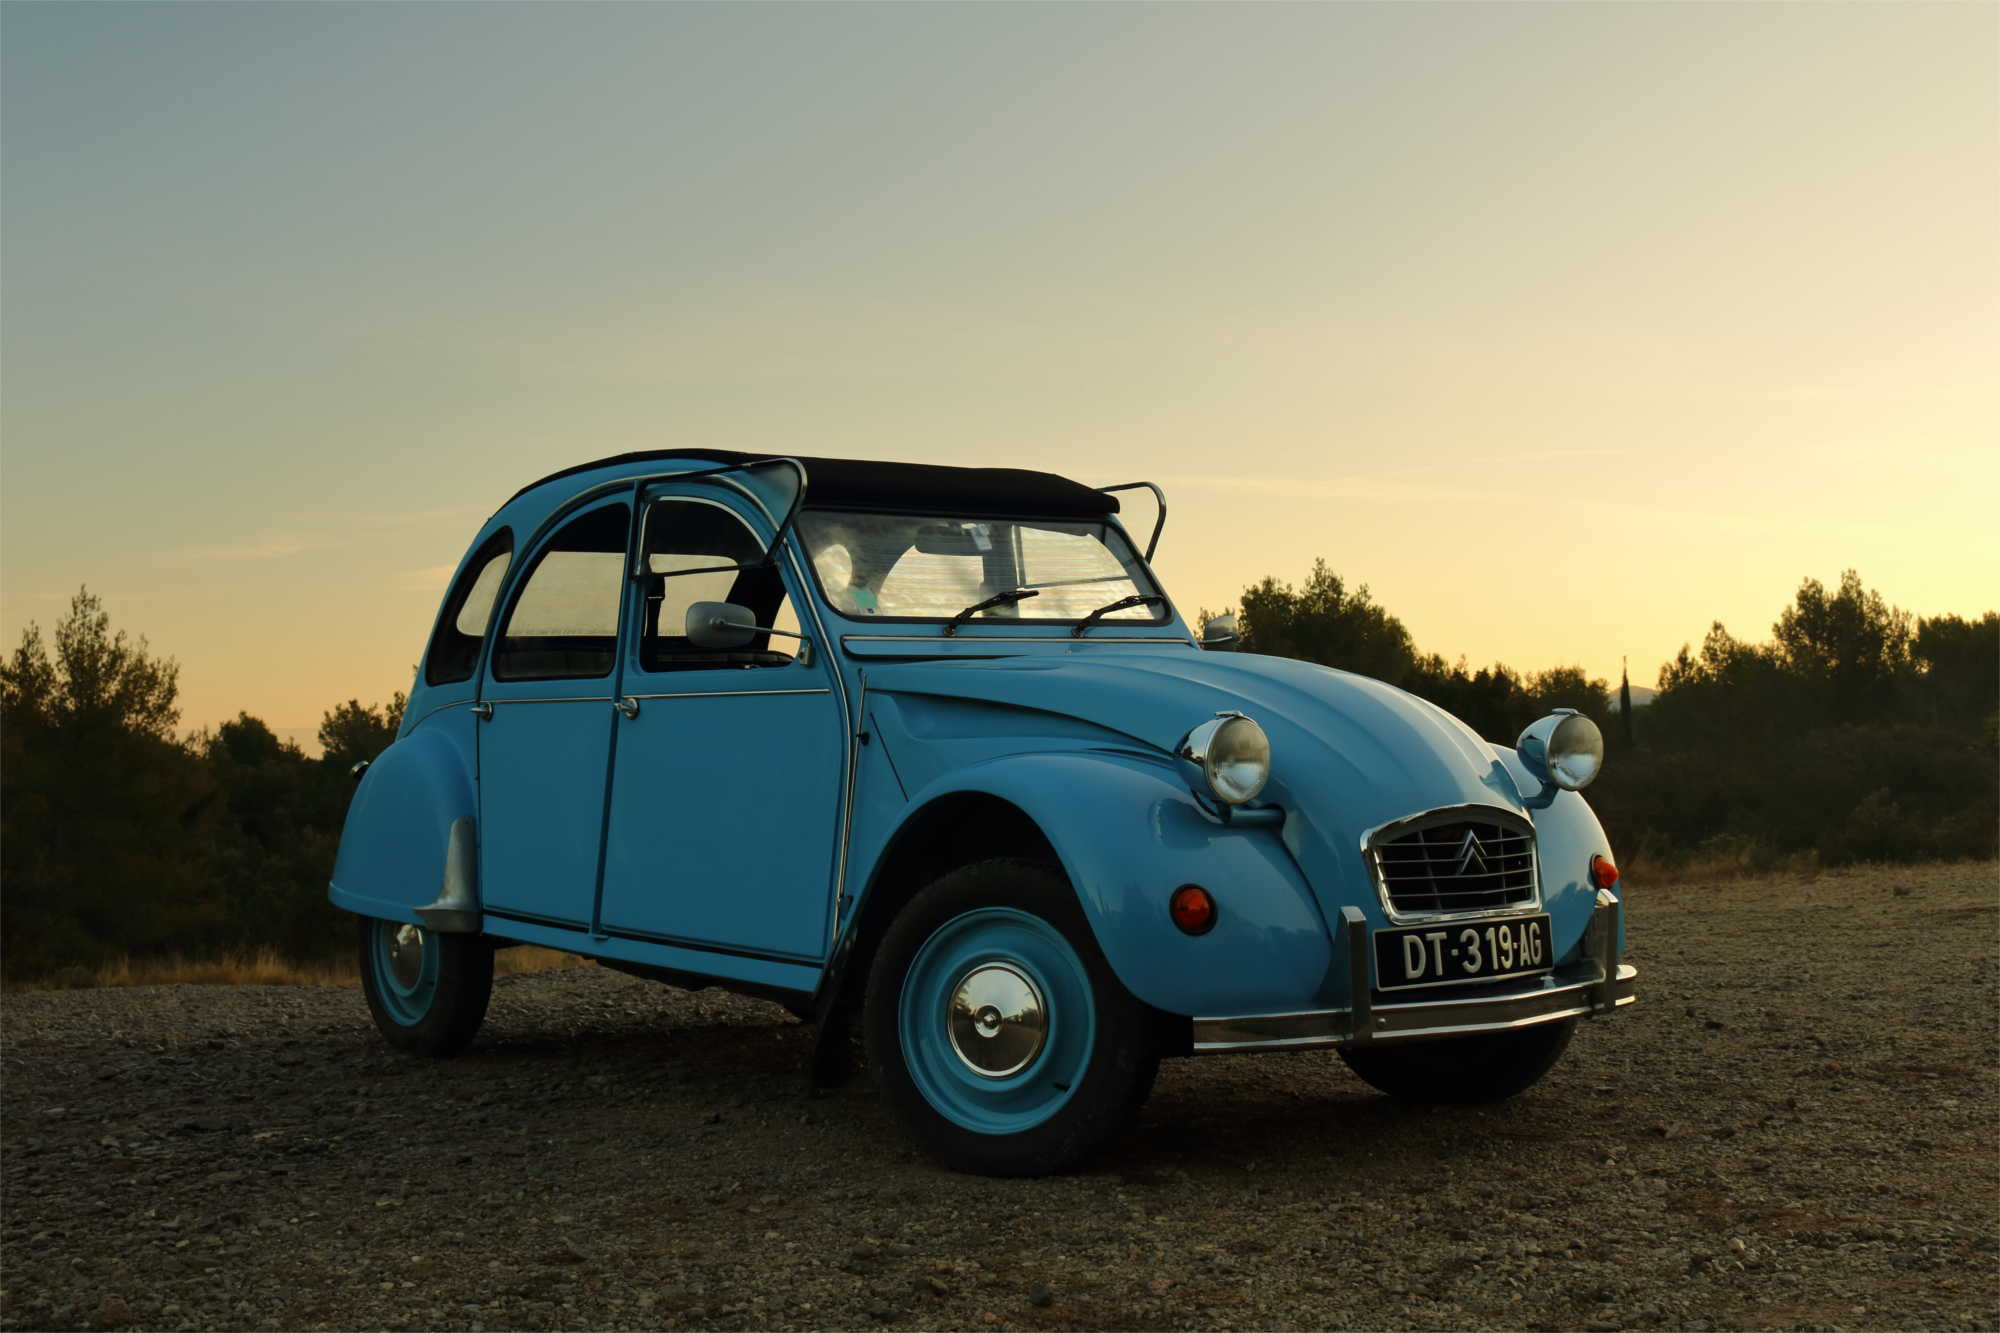 A professional photograph of one of the vehicles on offer at Provence Classics, for rental in the south of France.